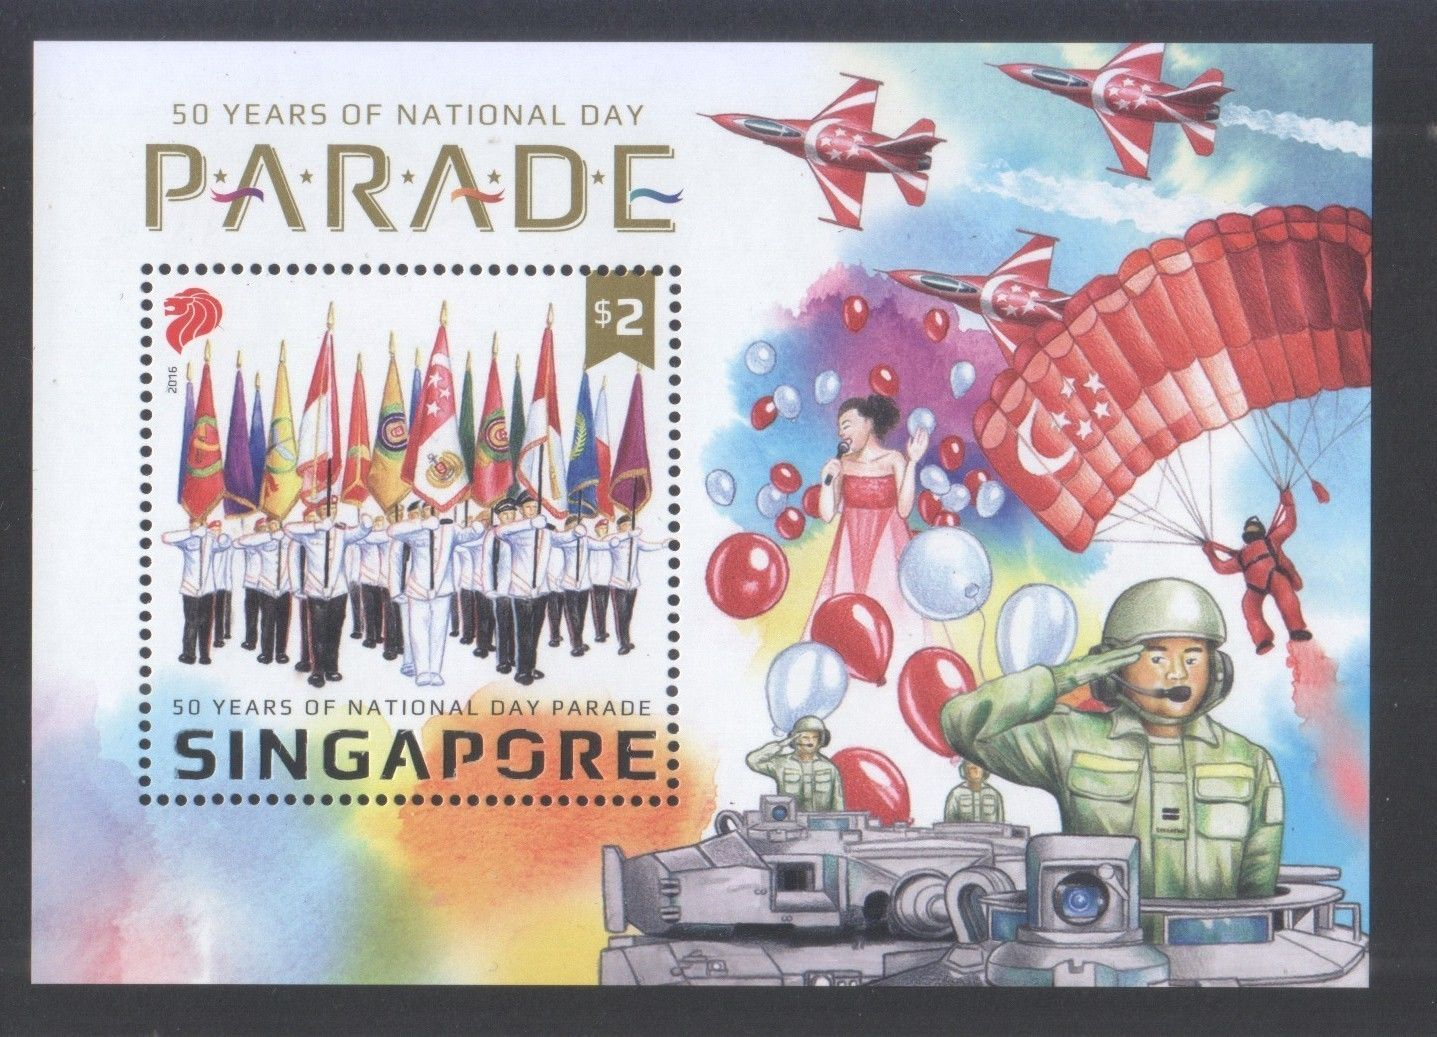 Singapore 2016 50 Years Of National Day Parade Miniature Souvenir Sheet Of 1 Stamp In Mint, S$2.00